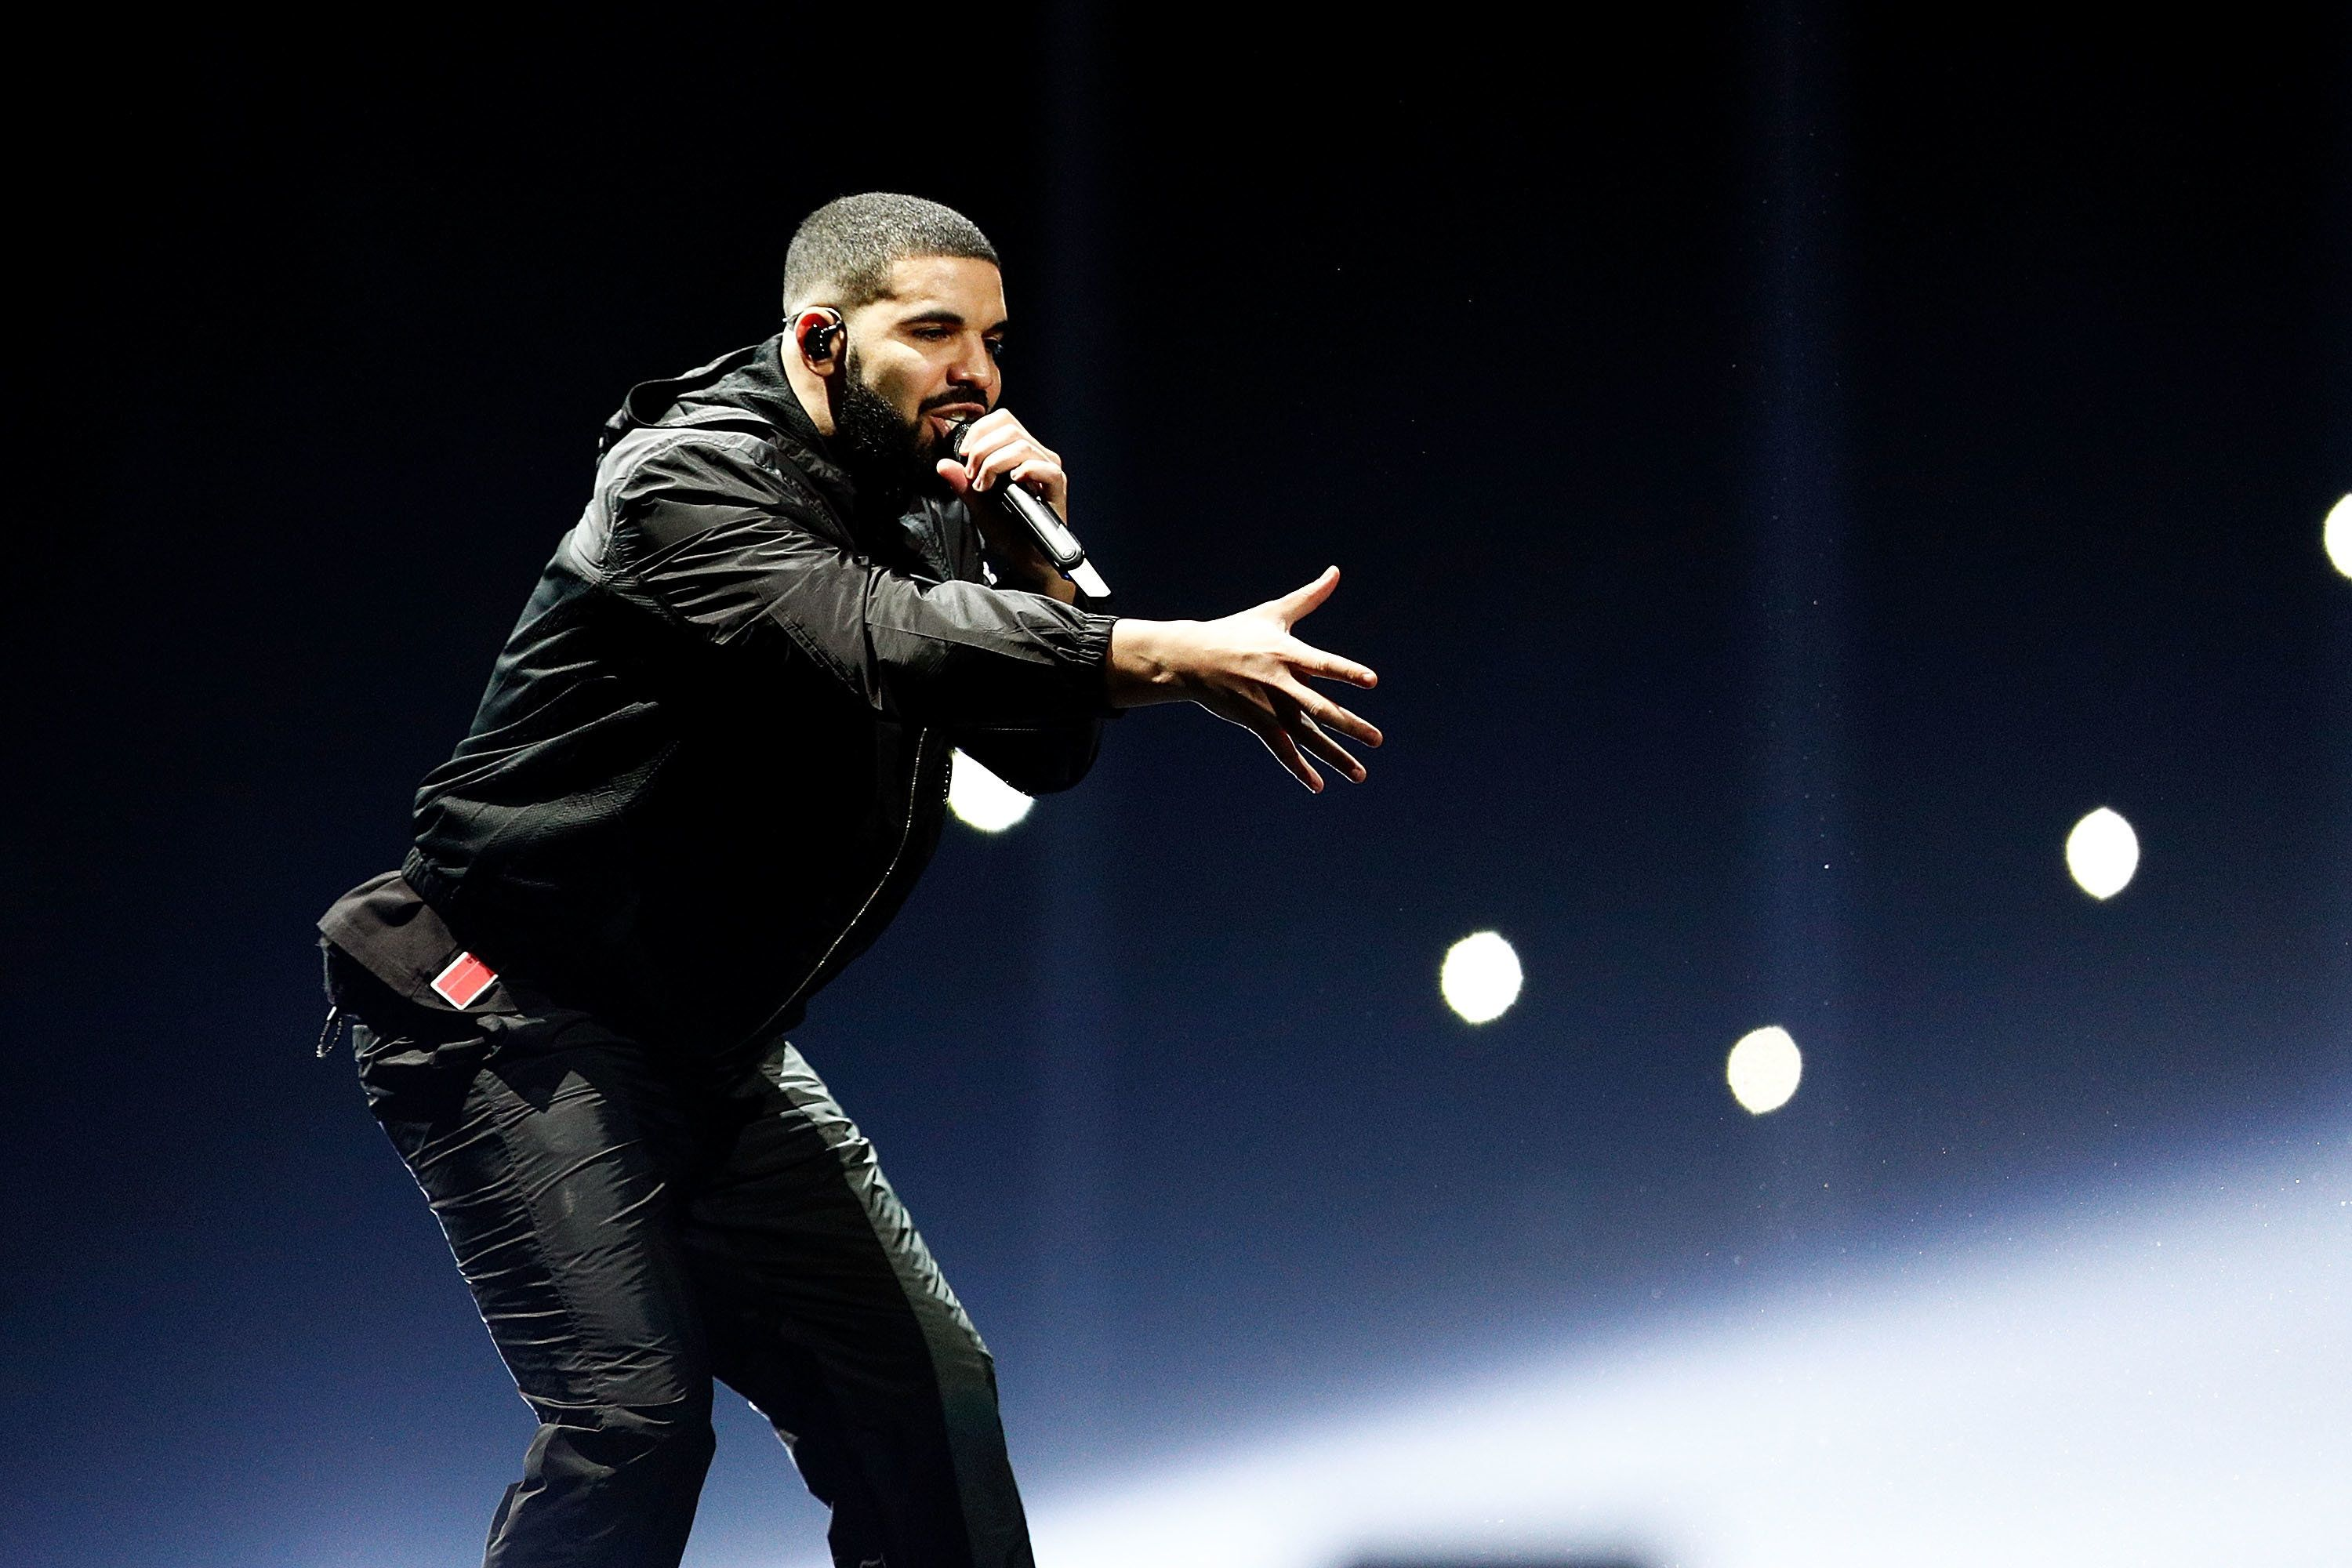 Drake Briefly Halts Live Show To Call Out One Fan For 'Touching Girls' In The Crowd